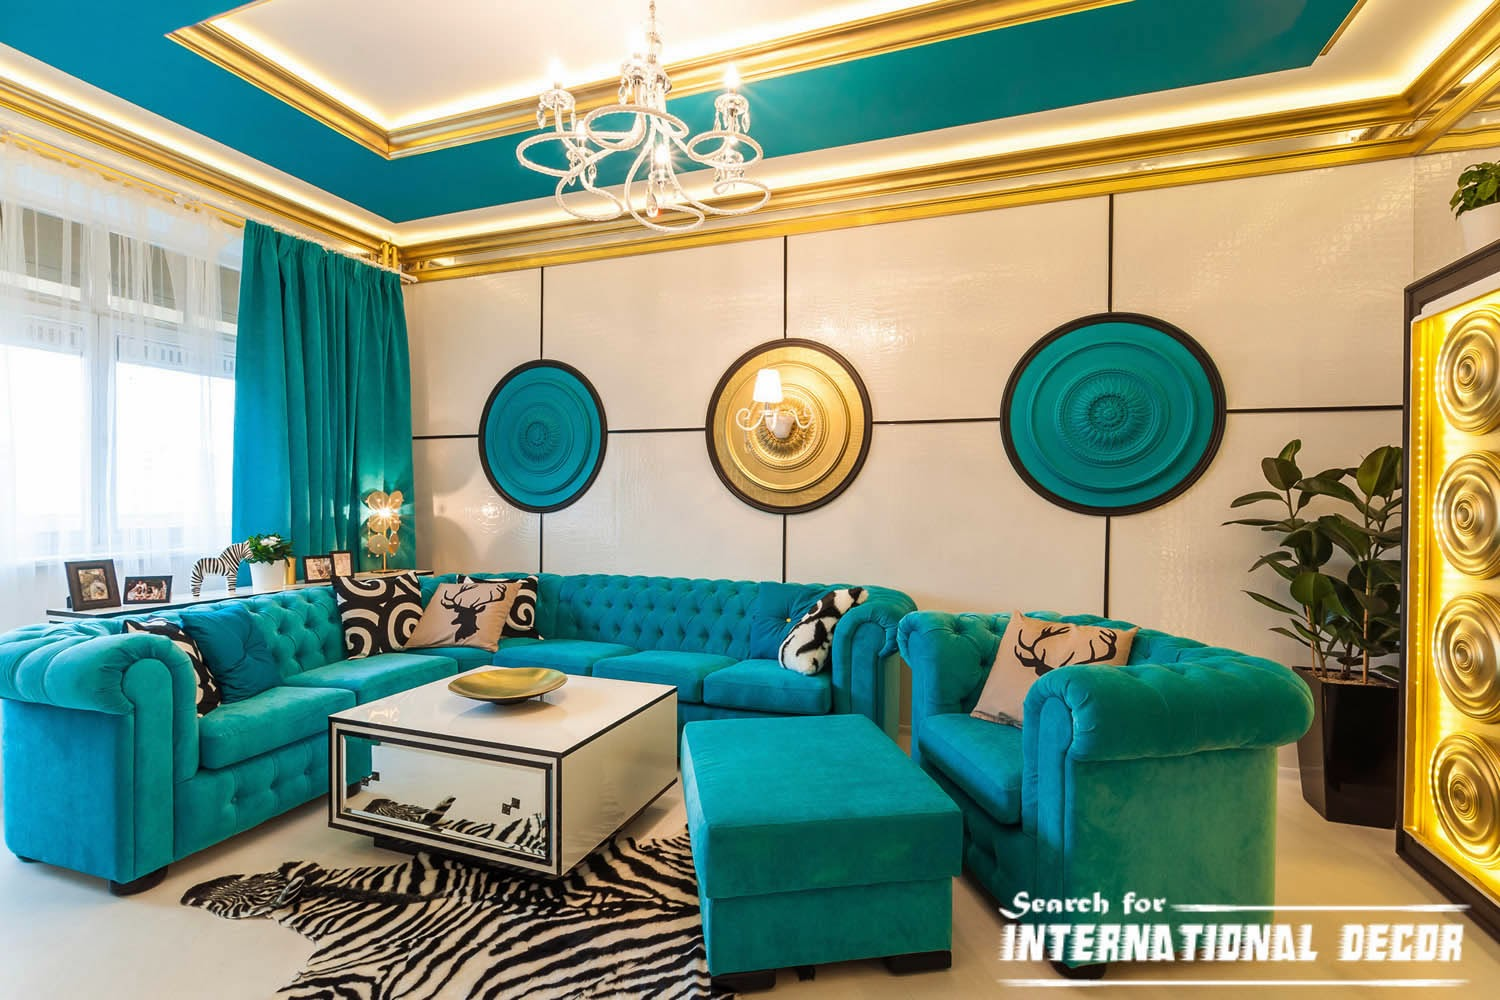 Top ideas for neoclassical style in the interior and furniture for Art decoration international